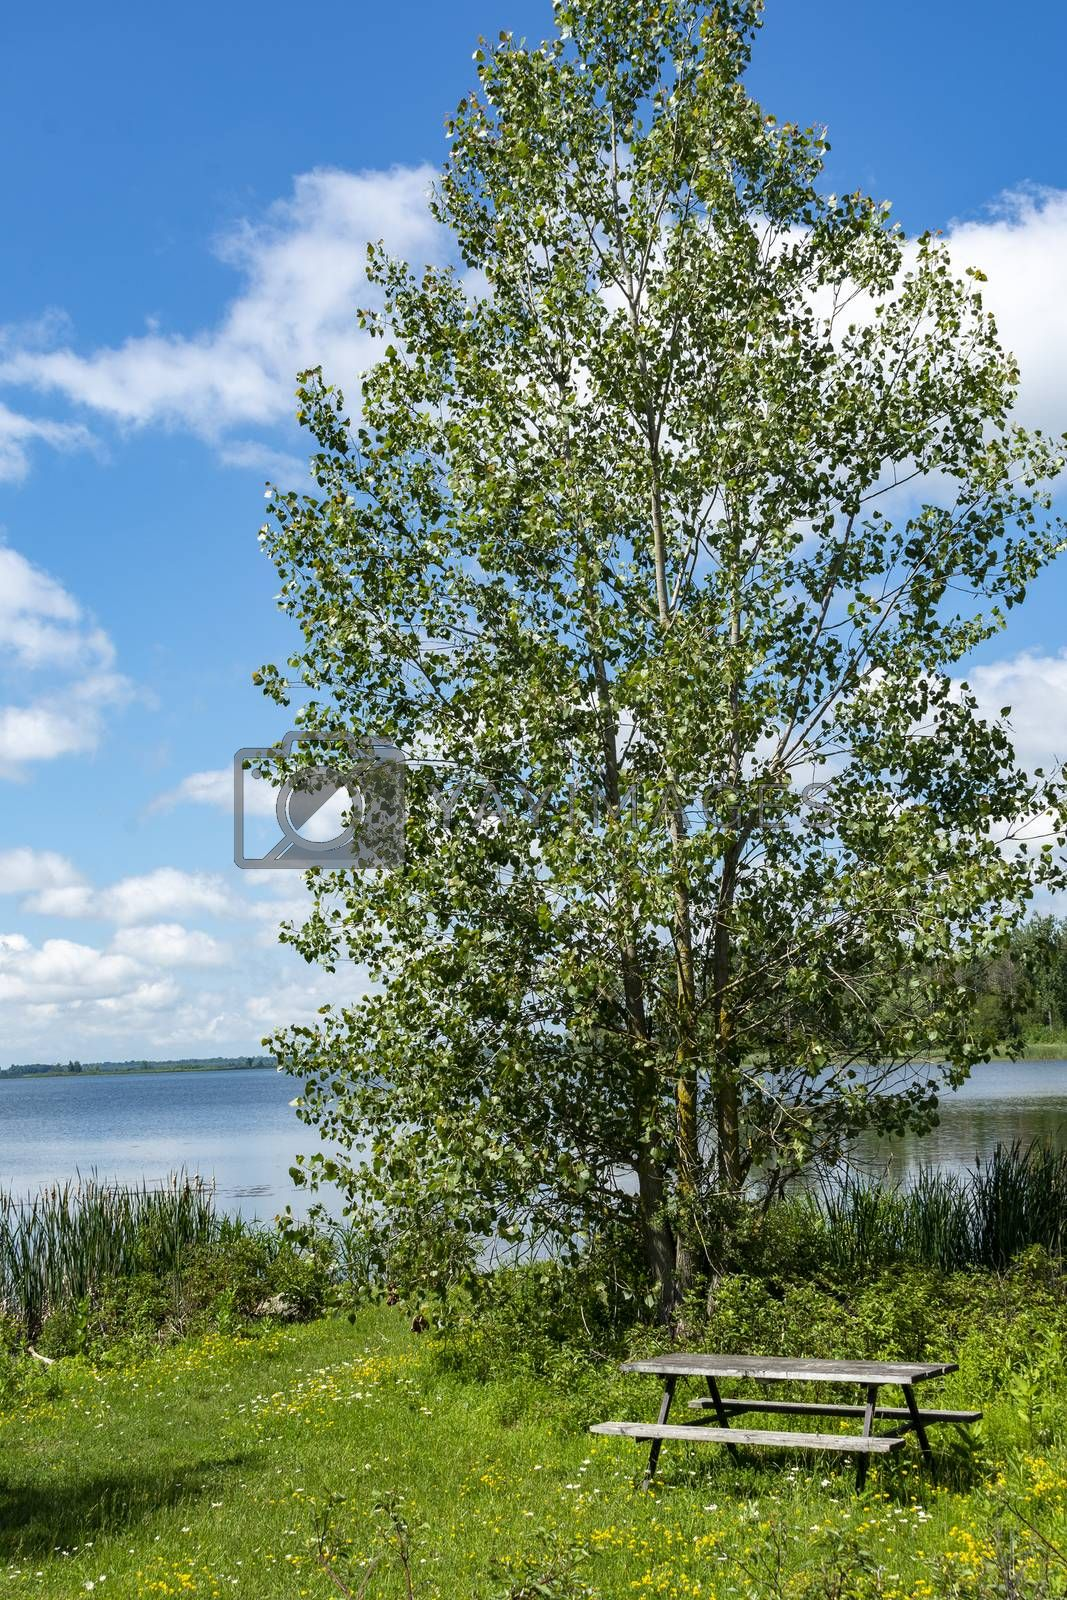 A beautiful alder tree grows on the shore near the lake, and under it, on the lawn, is a table with two benches